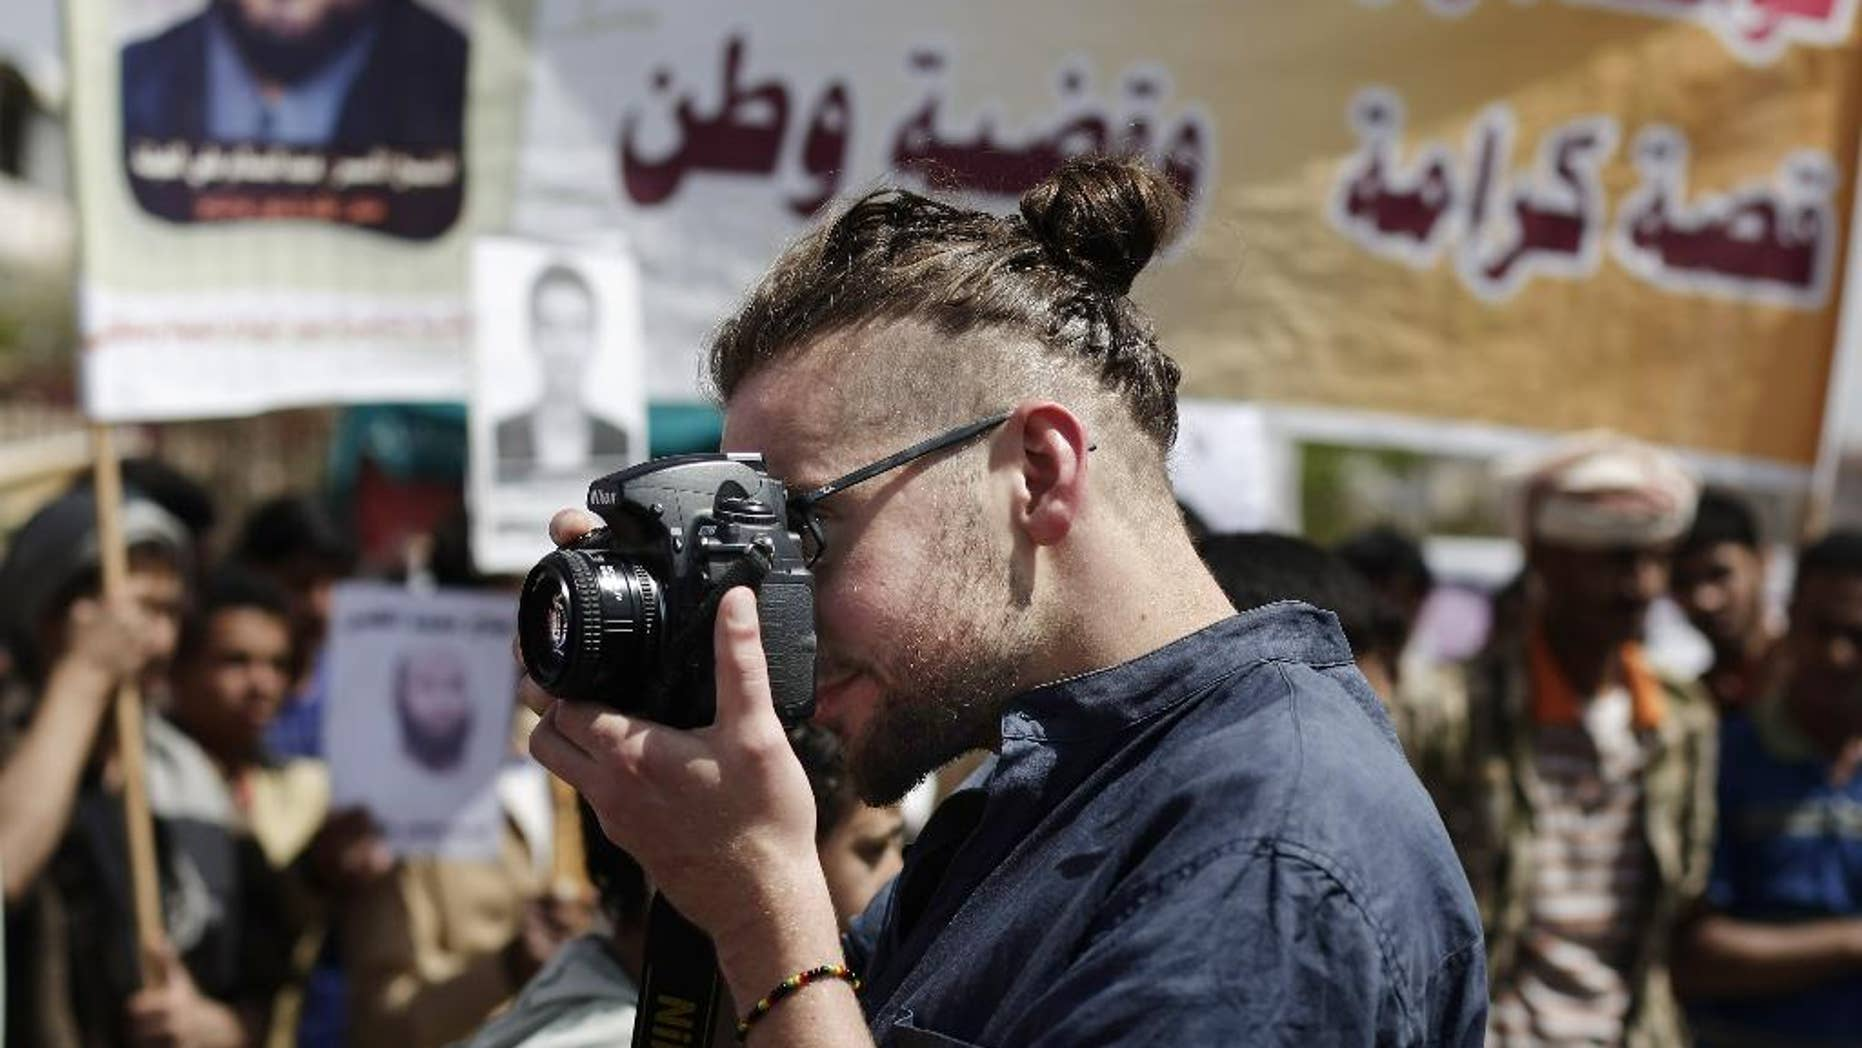 """In this Tuesday, April 16, 2013 photo, Luke Somers, 33, an American photojournalist who was kidnapped over a year ago by al-Qaida, uses a camera during a demonstration demanding the release of Yemeni detainees in Guantanamo Bay prison in front of the U.S. embassy in Sanaa, Yemen. Somers and a South African teacher held by al-Qaida militants in Yemen were killed Saturday, Dec. 6, 2014 during a U.S.-led rescue attempt, a raid President Barack Obama said he ordered over an """"imminent danger"""" to the reporter. (AP Photo/Hani Mohammed)"""